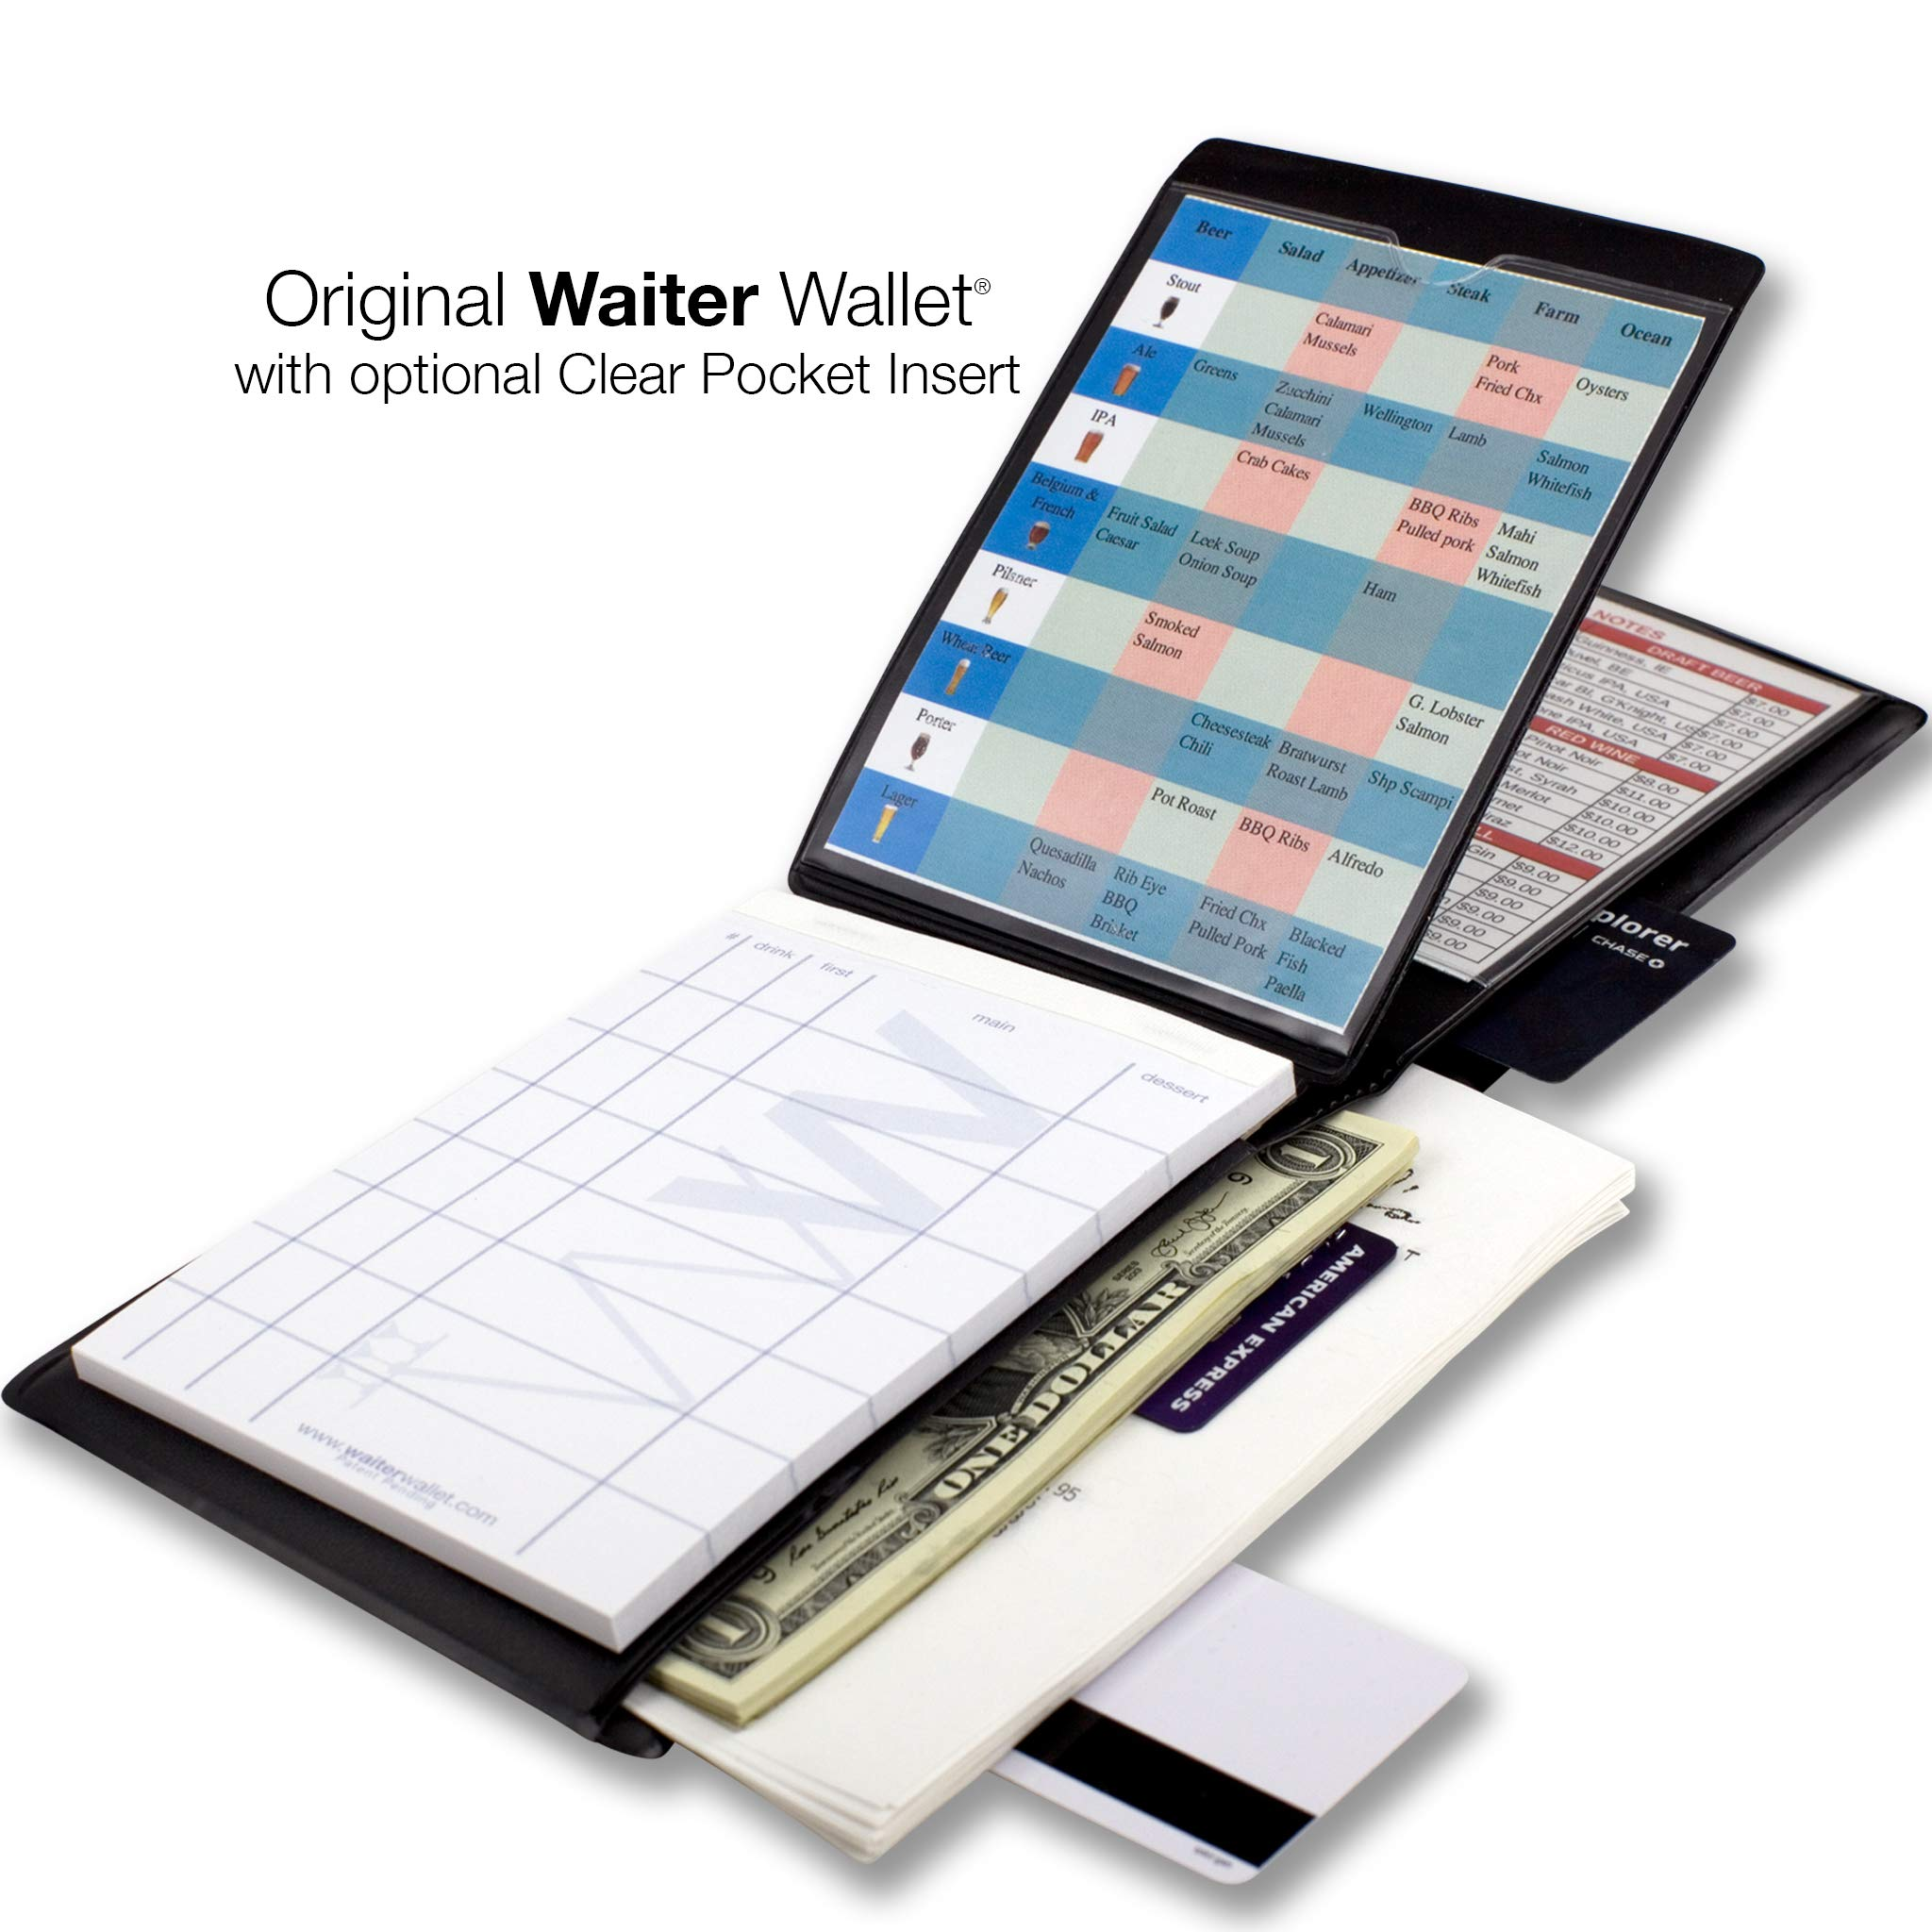 Waiter Wallet | Server Book For Waiters & Waitresses | Fits Waitstaff Apron| Premium Server Pad Included | Spill Resistant Design Perfectly Sized To Organize Everything Servers Are Challenged To Carry